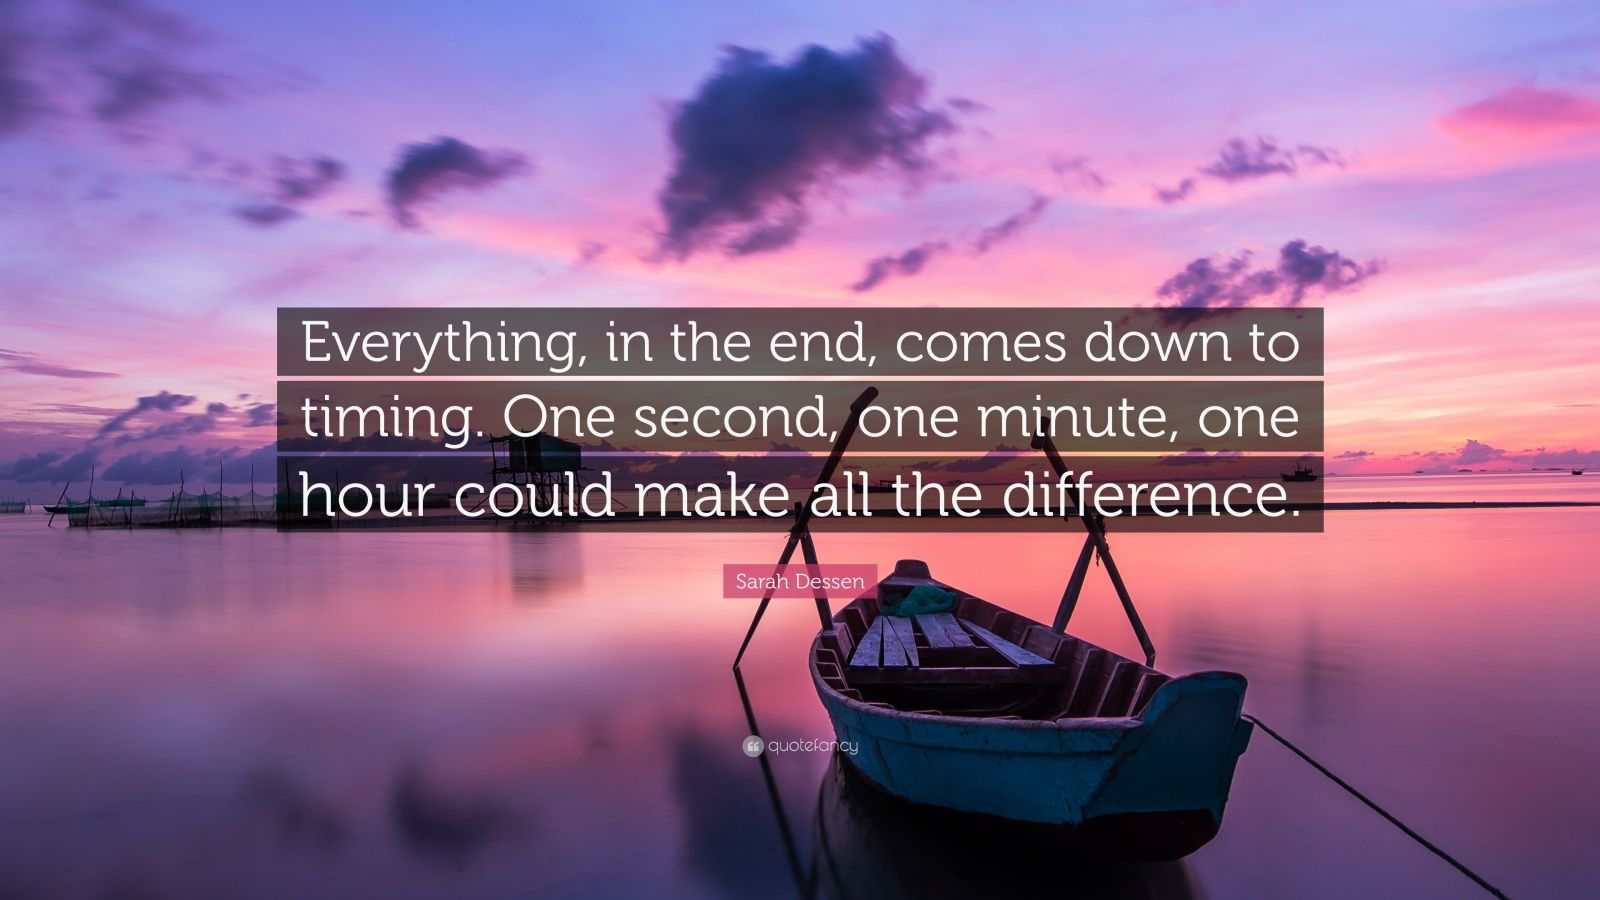 """Sarah Dessen Quote: """"Everything, in the end, comes down to timing. One second, one minute, one hour could make all the difference."""""""